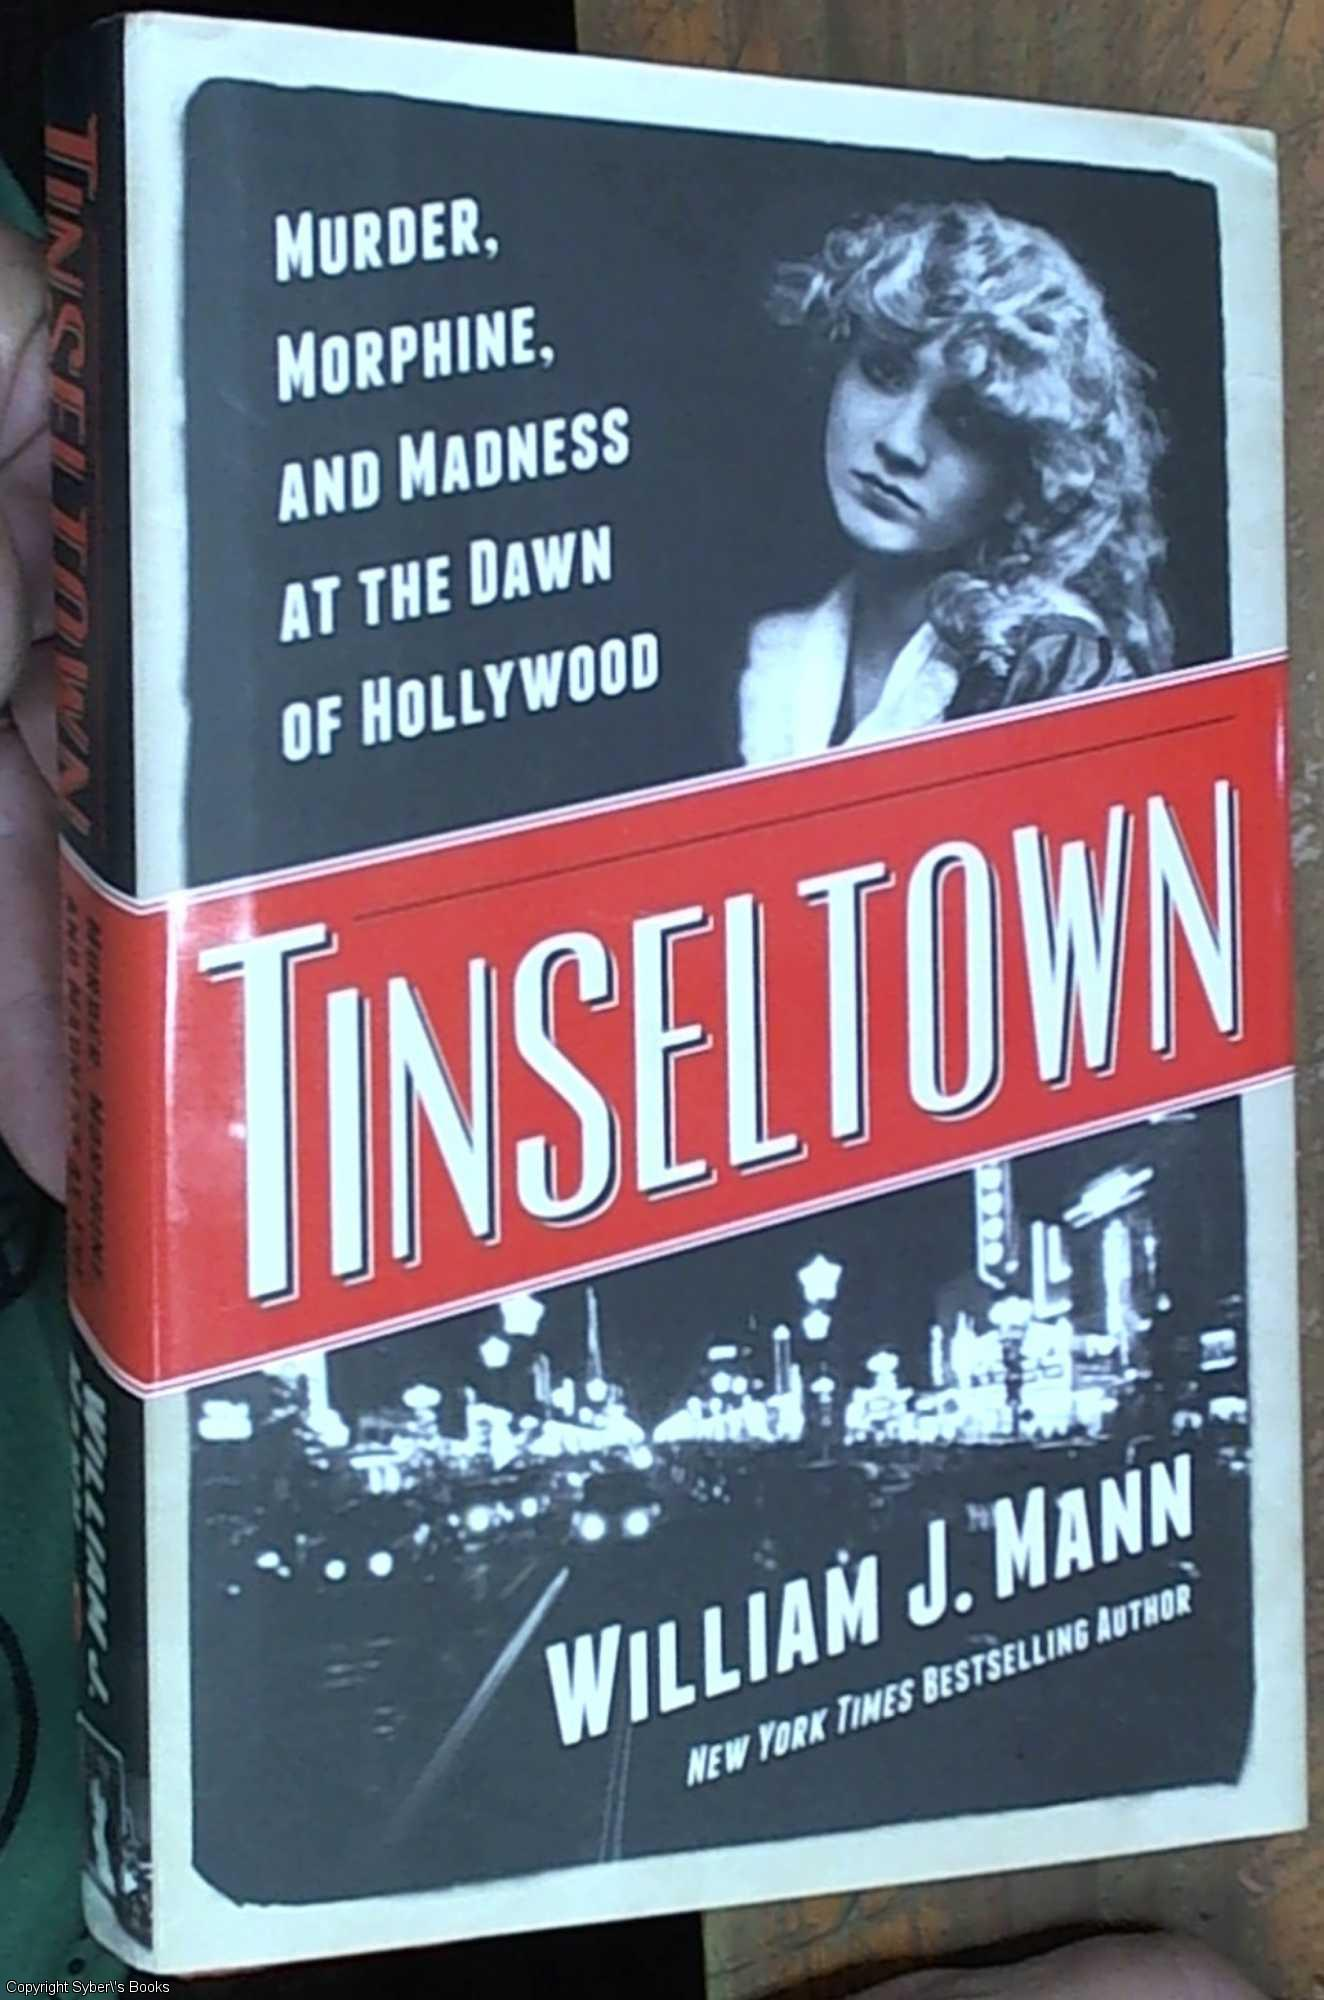 tinseltown murder morphine and madness at the dawn of hollywood